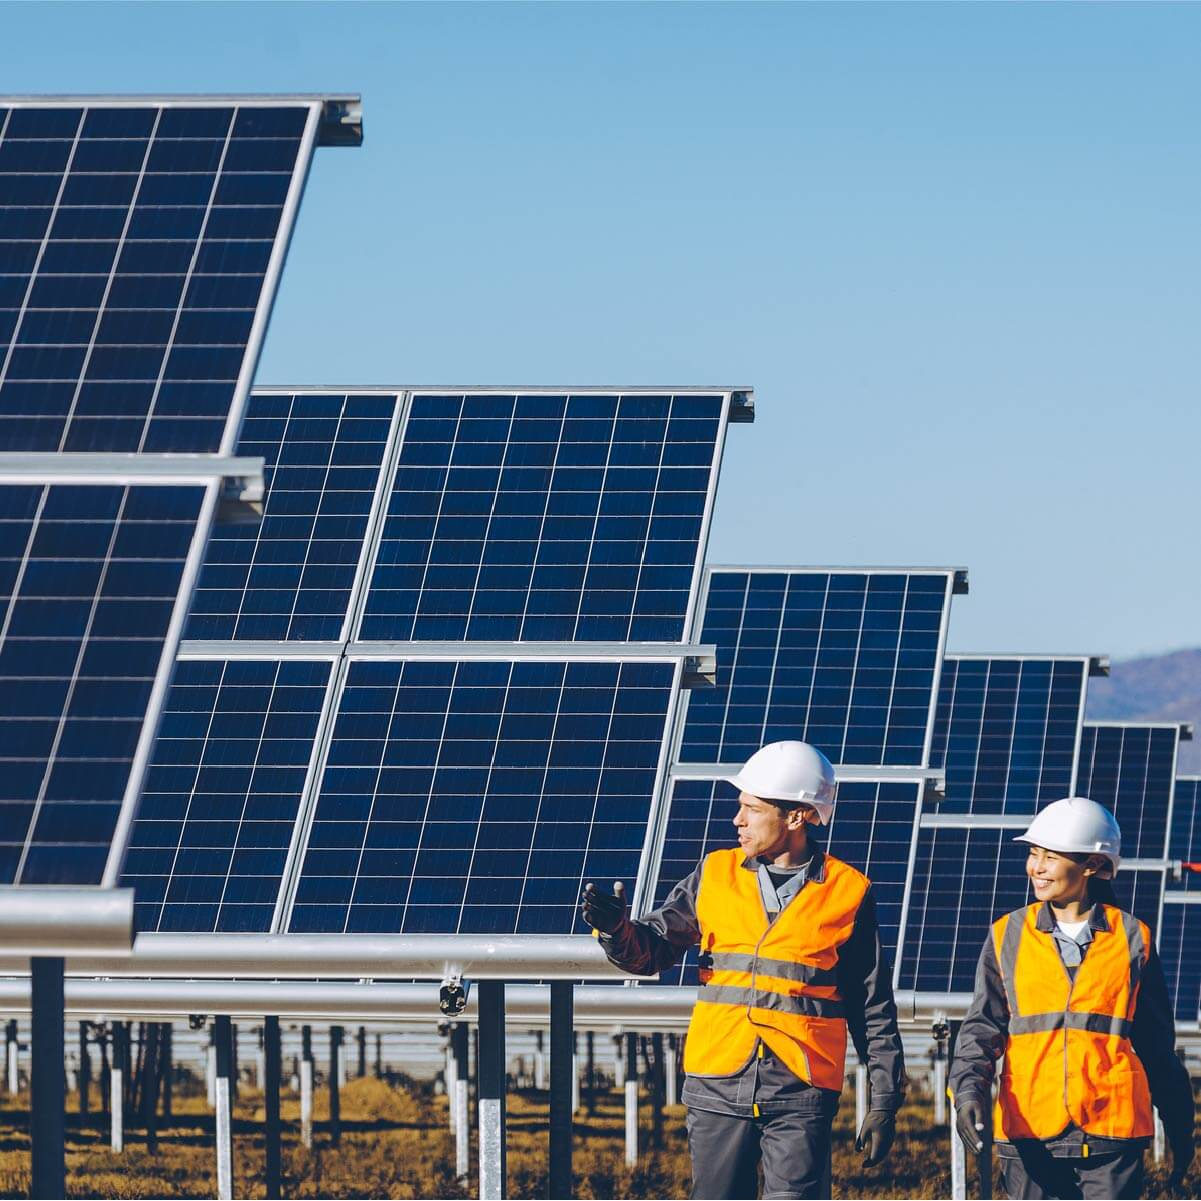 A man and a woman inspecting solar panels